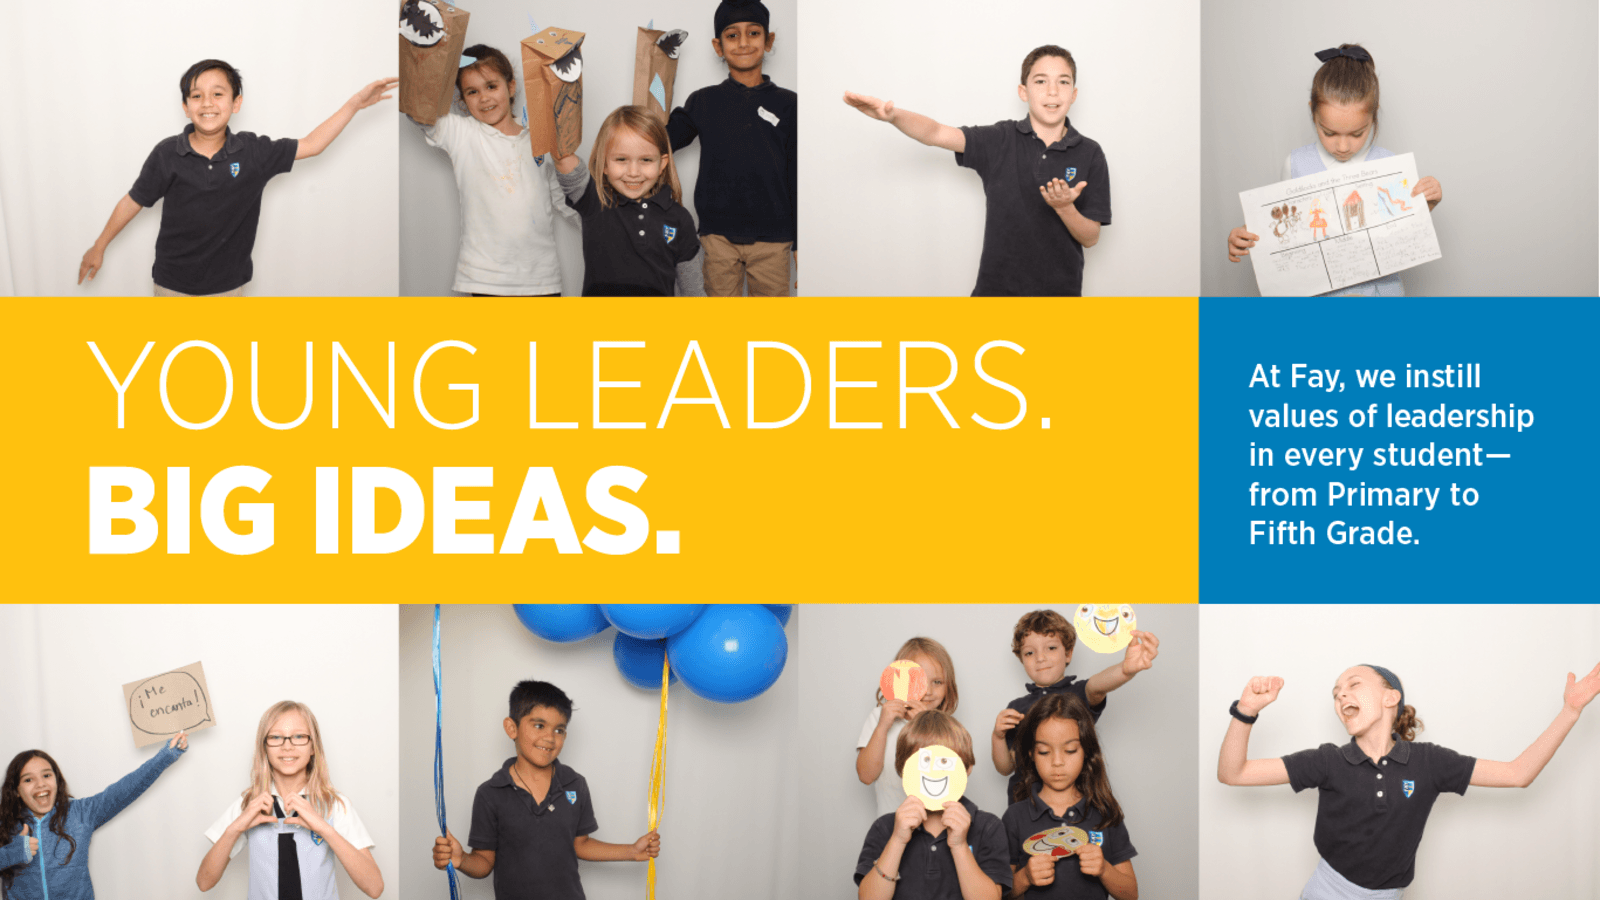 Homepage Slider of young leaders with big ideas